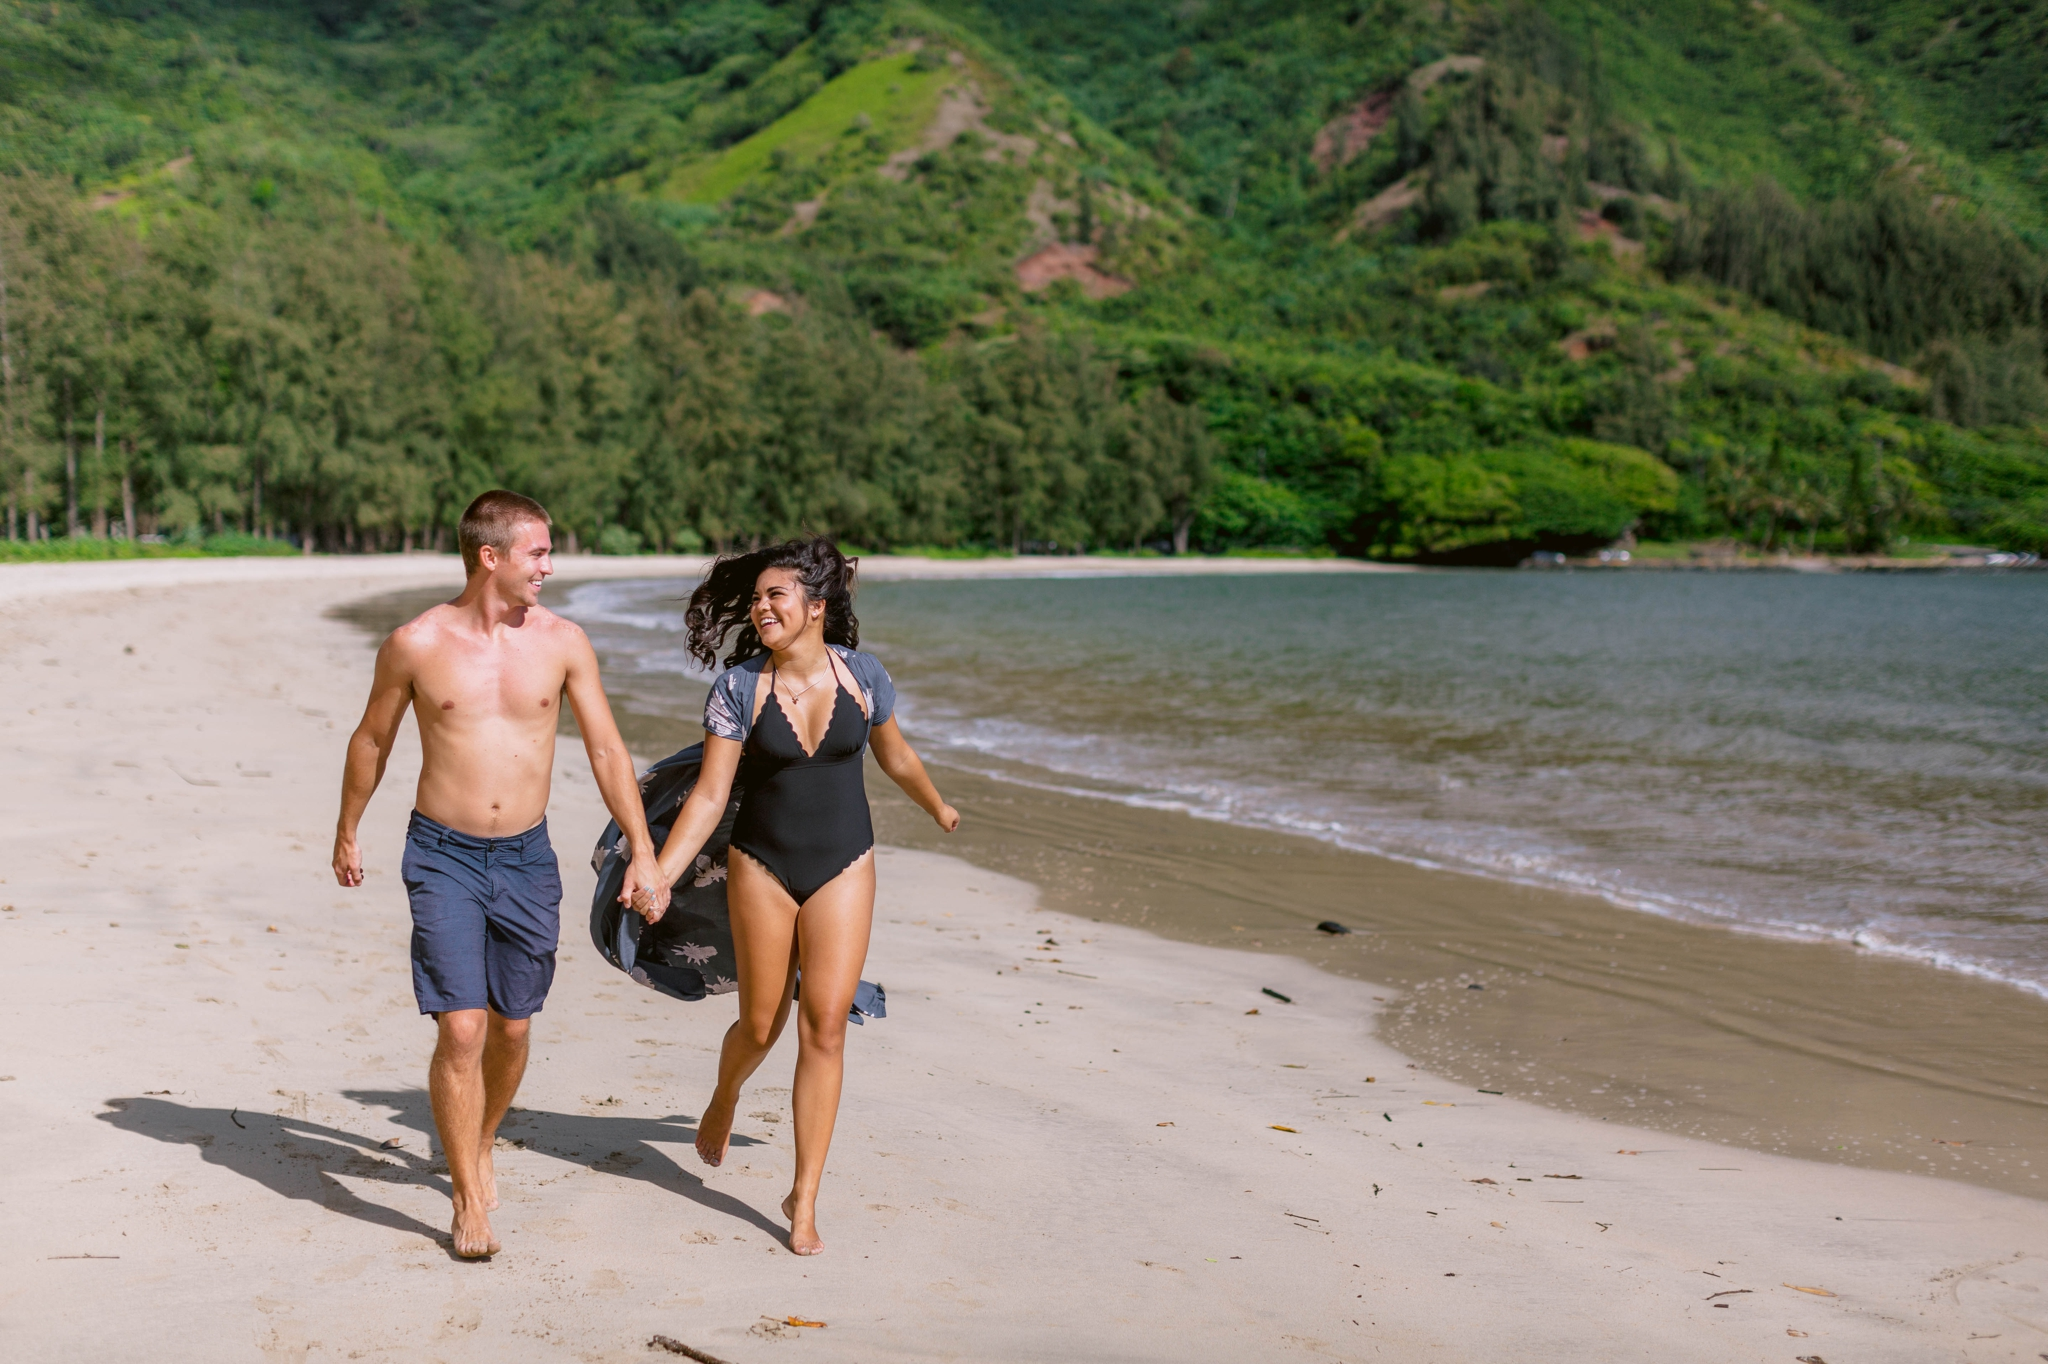 Couple running in their bathing suits - Rilee + Max - Beach Engagement Session at Kahana Bay in Kaaawa, HI - Oahu Hawaii Wedding Photographer - #hawaiiengagementphotographer #oahuengagementphotographer